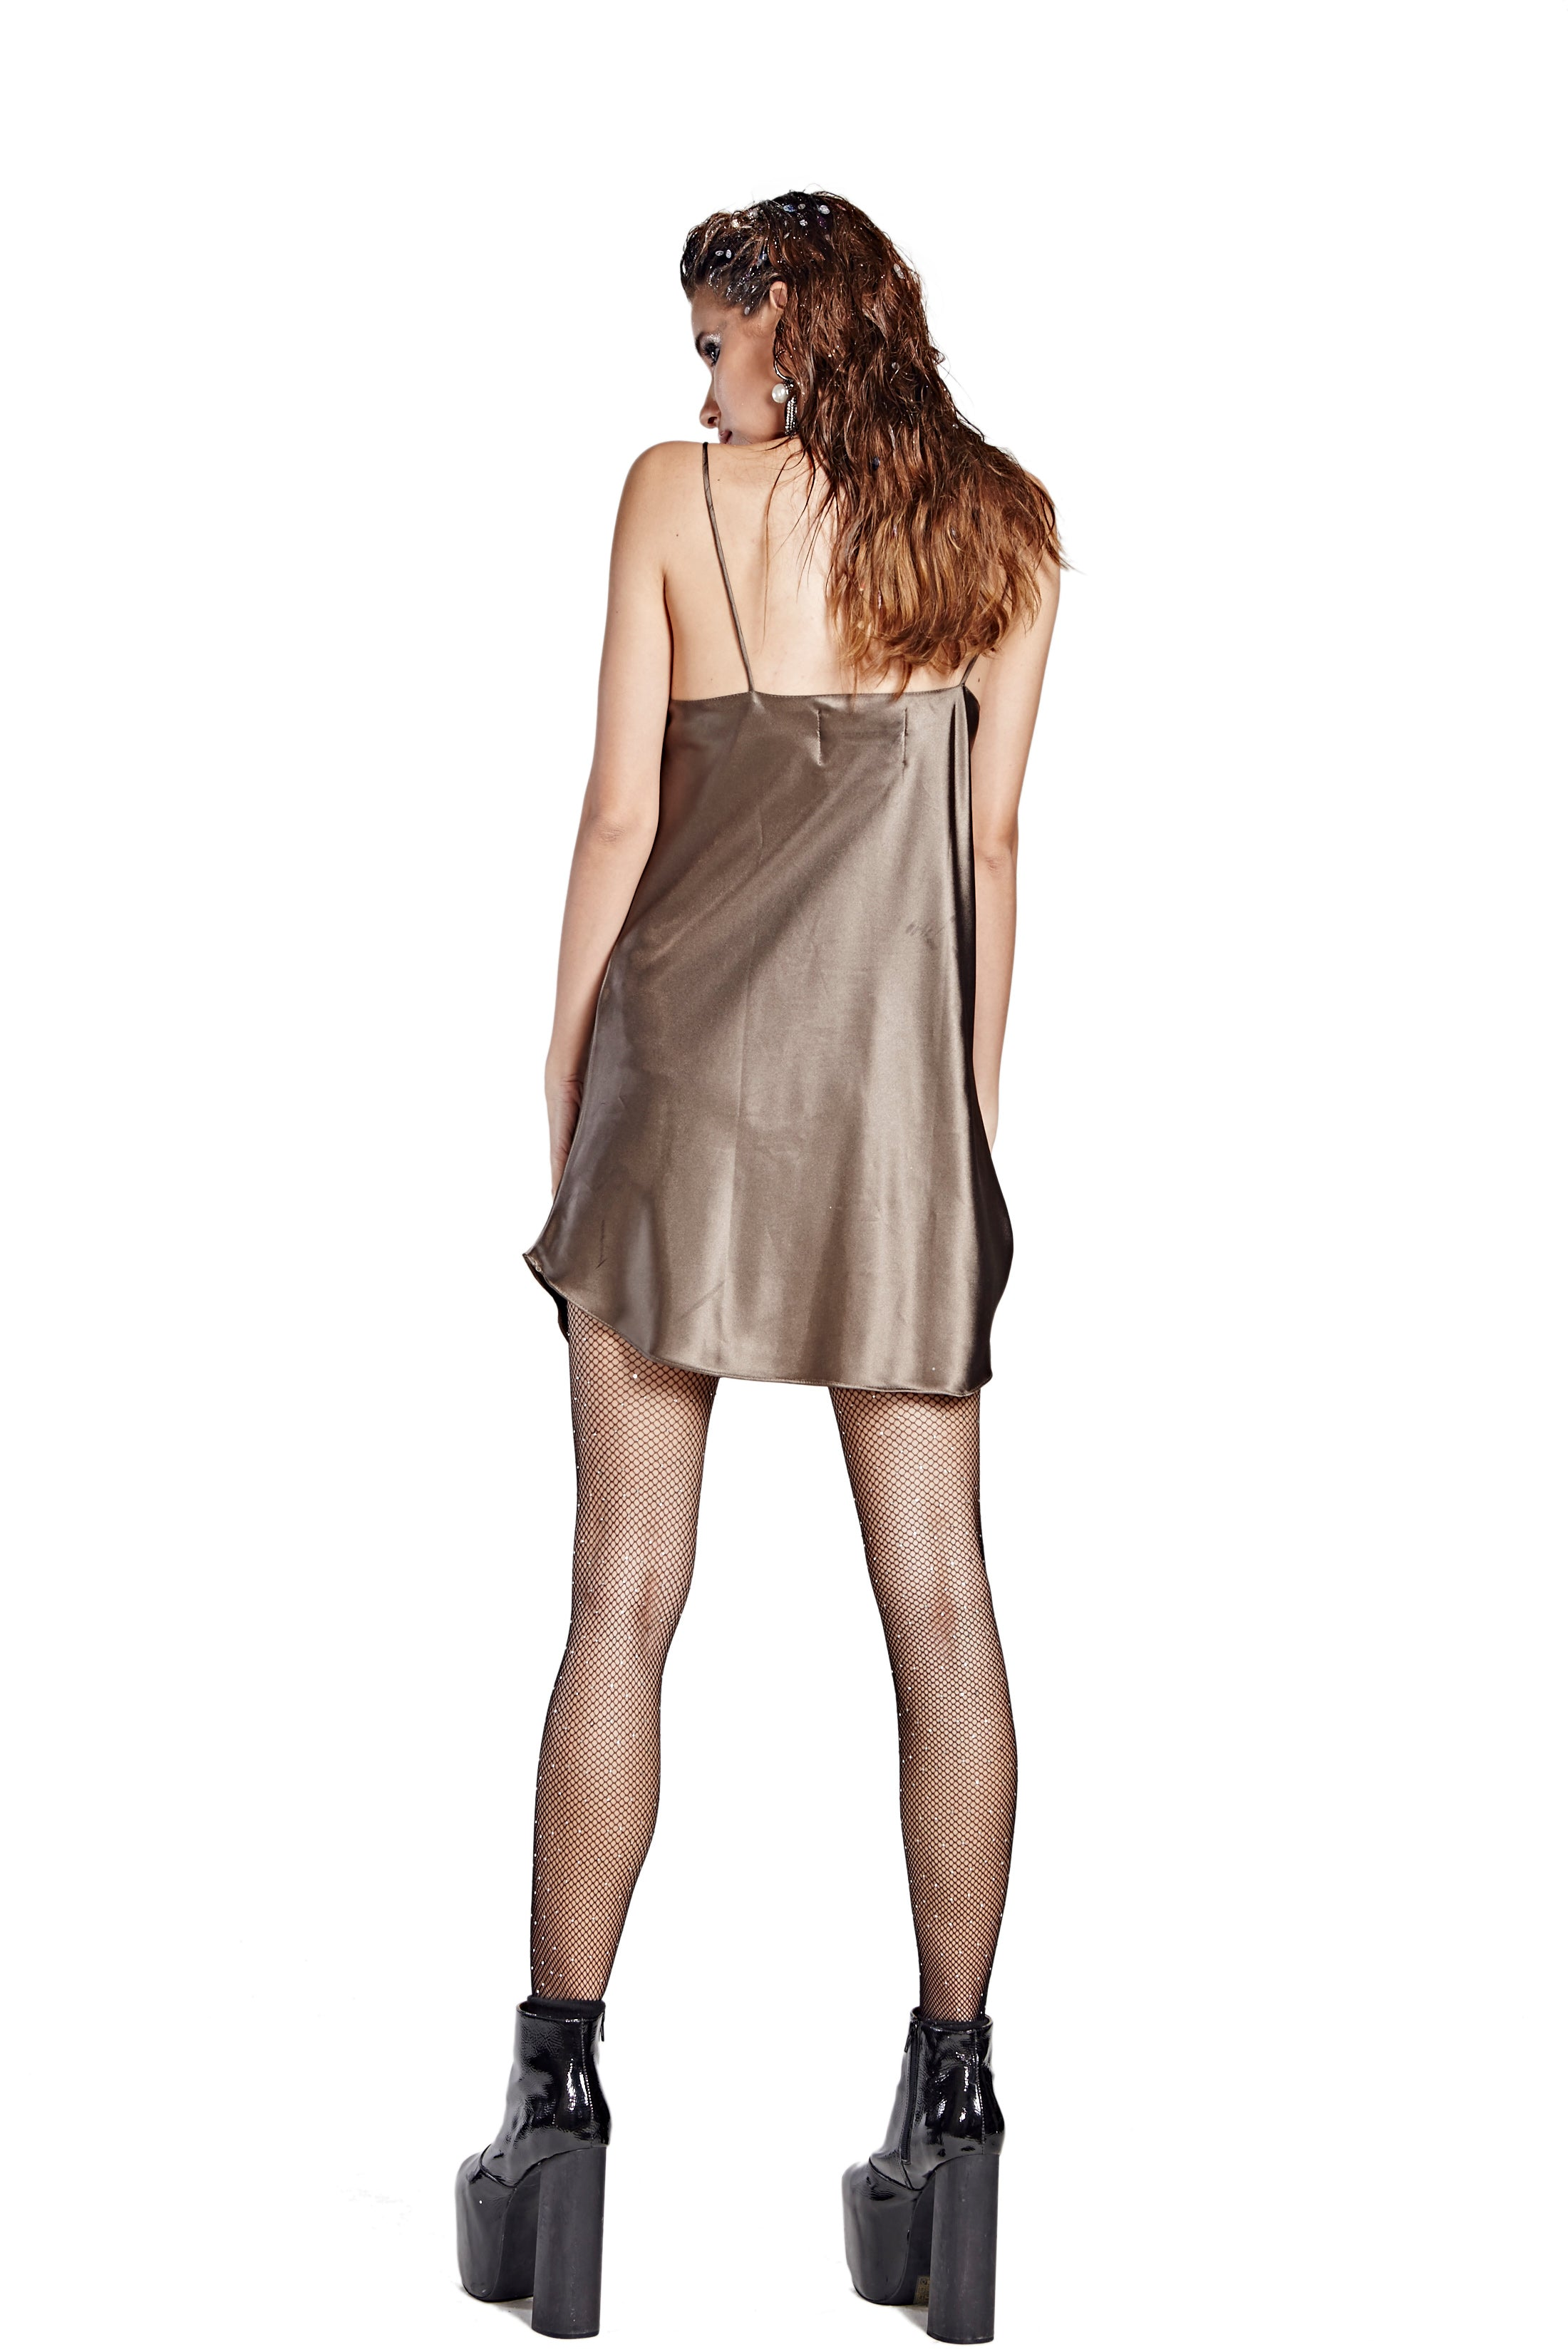 Sleep With Me Night Gown - Brown